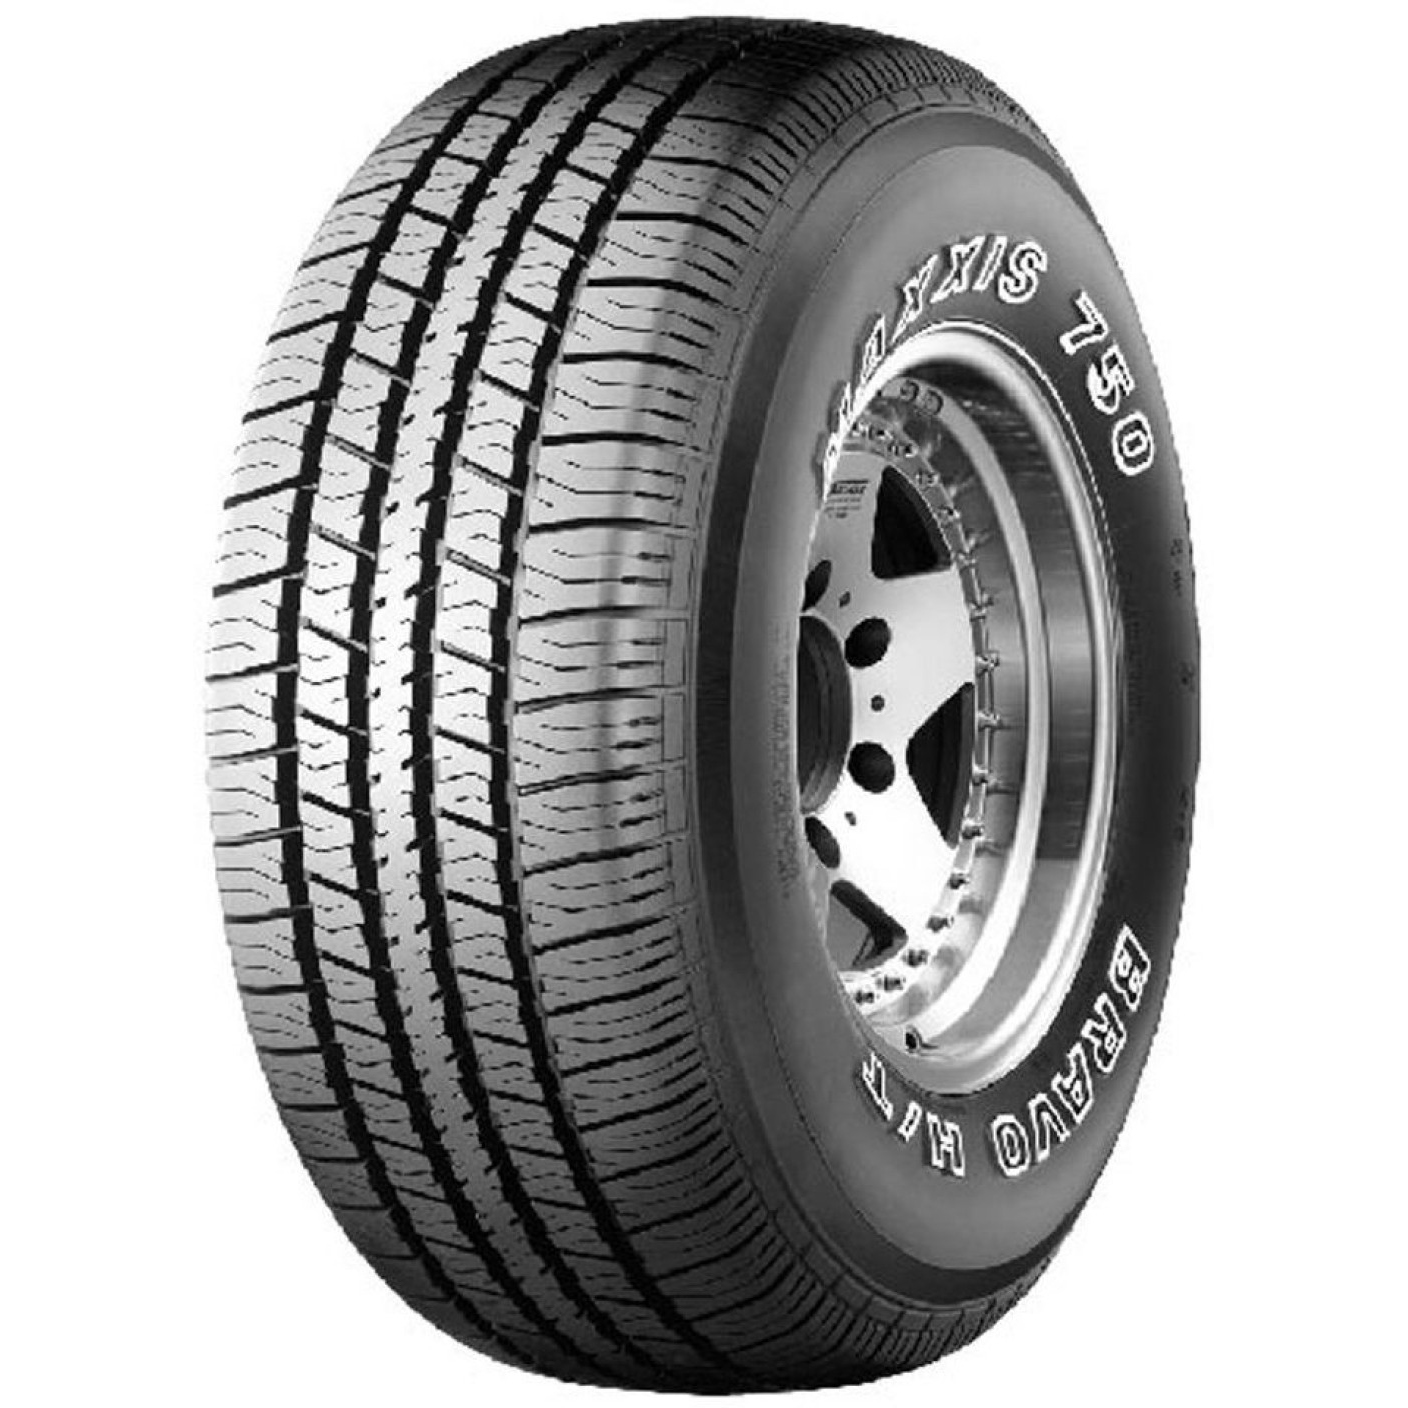 Maxxis HT750 OWL 255/65 R 16 Tubeless 109 T Car Tyre